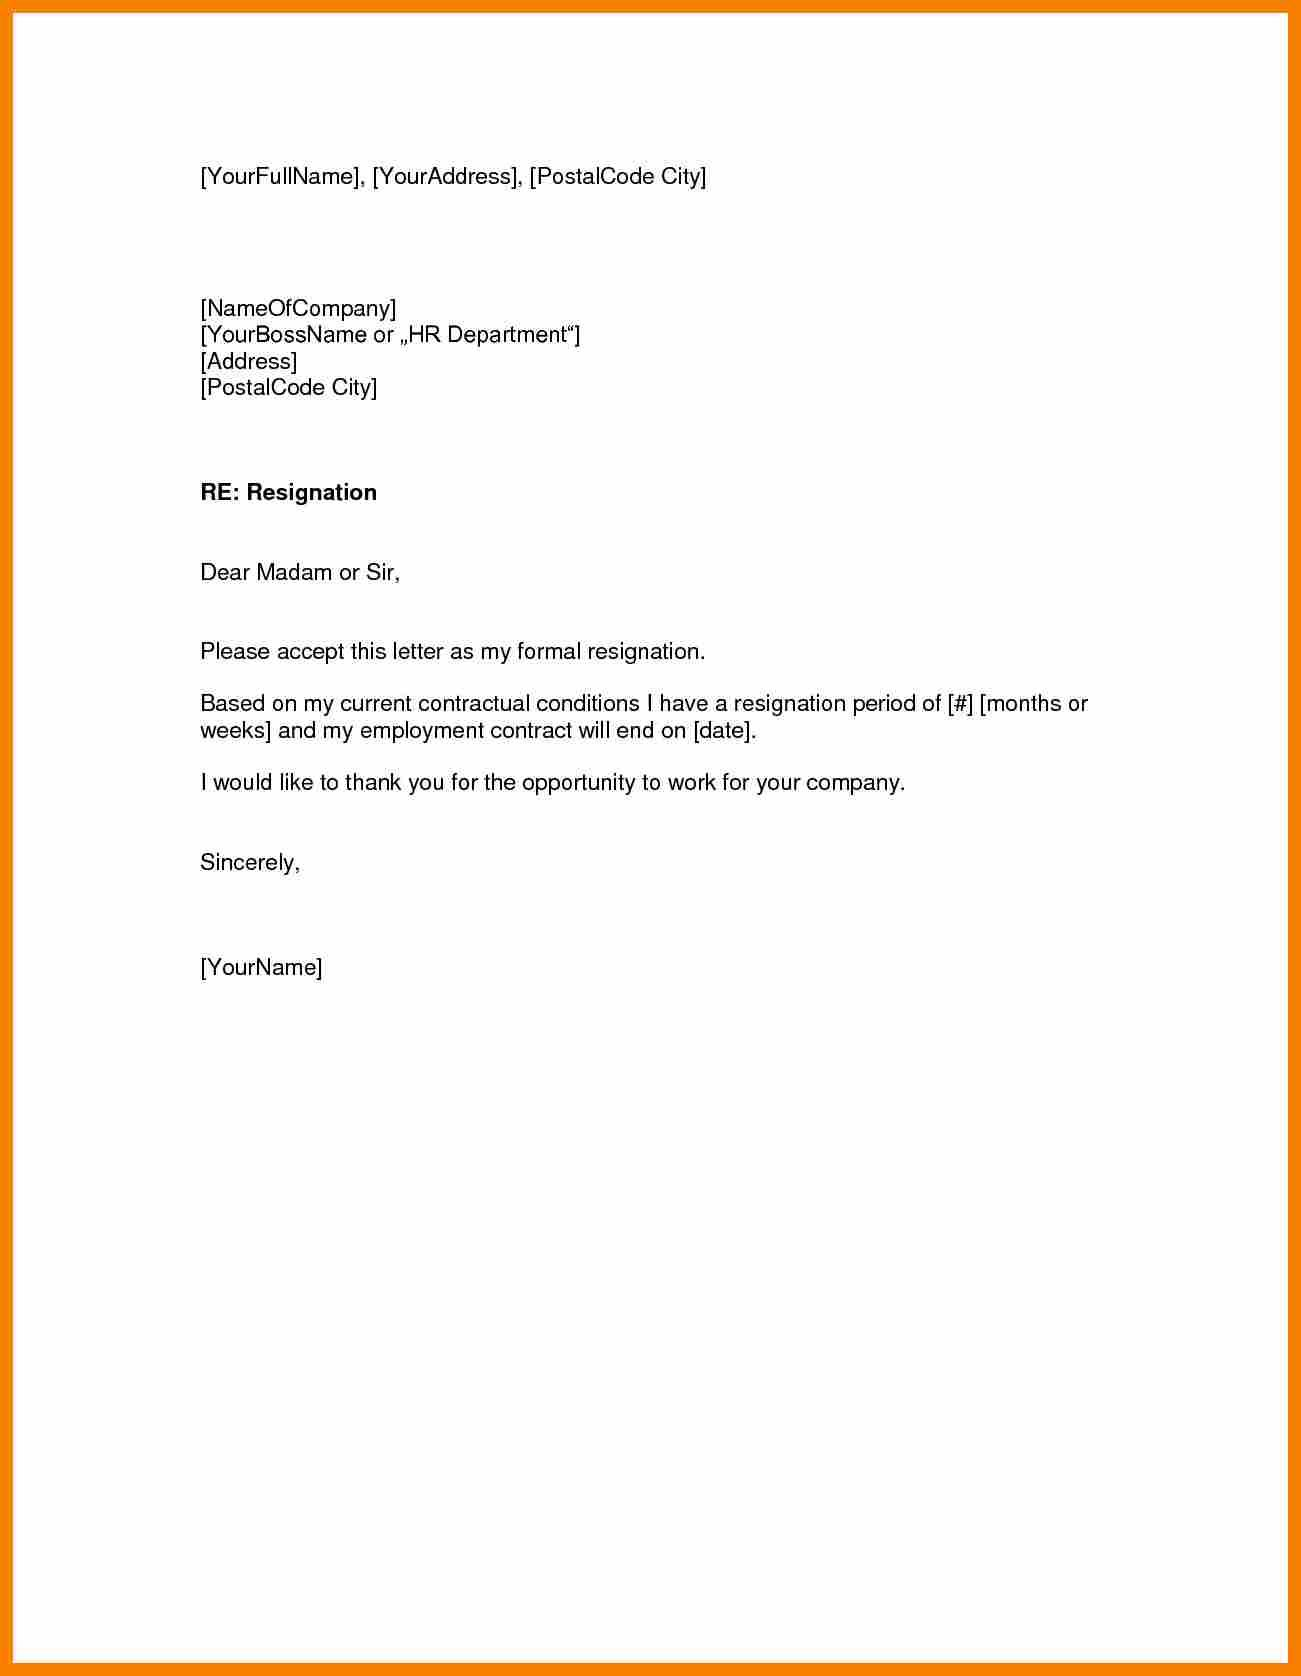 Consent letter format hindi resignation sample gallery plaint consent letter format hindi resignation sample gallery plaint spiritdancerdesigns Images